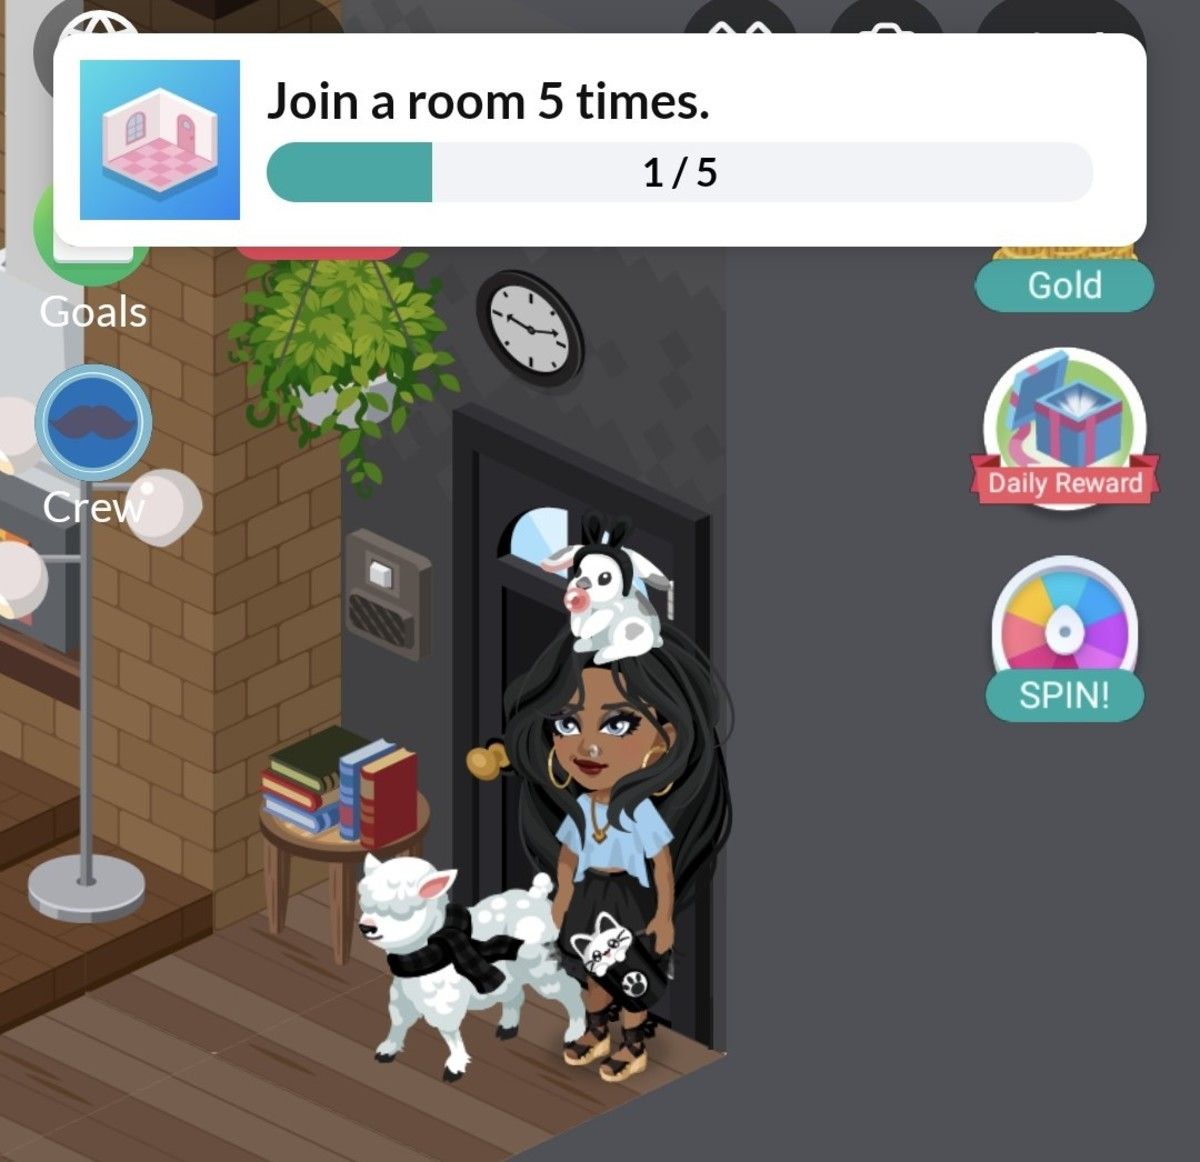 Literally entering a room is one of the daily goals- so easy!